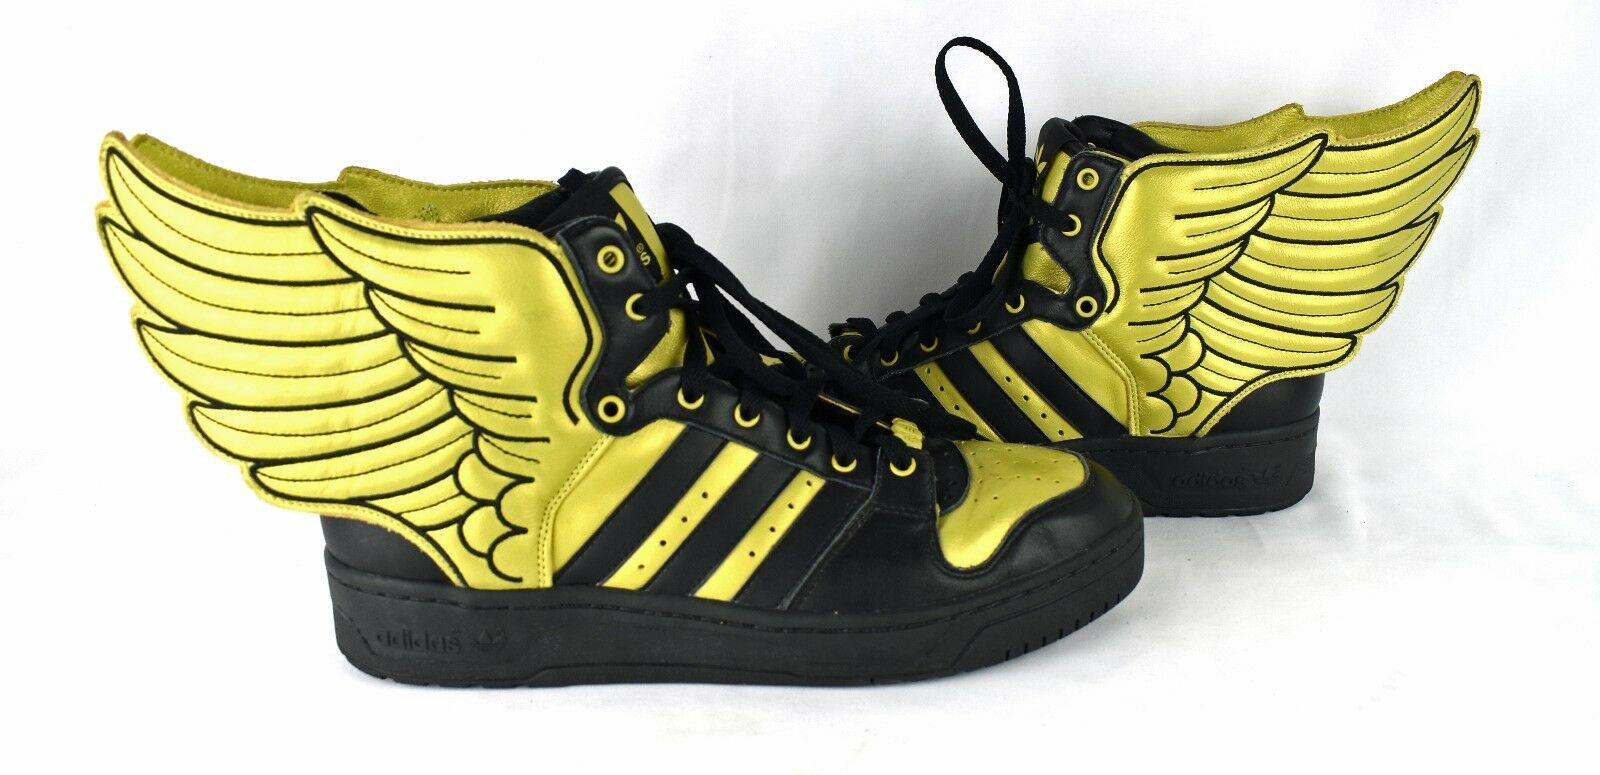 RARE  JEREMY SCOTT X ADIDAS JS WINGS 2.0 Metallic gold Black shoes 10.5 12 10